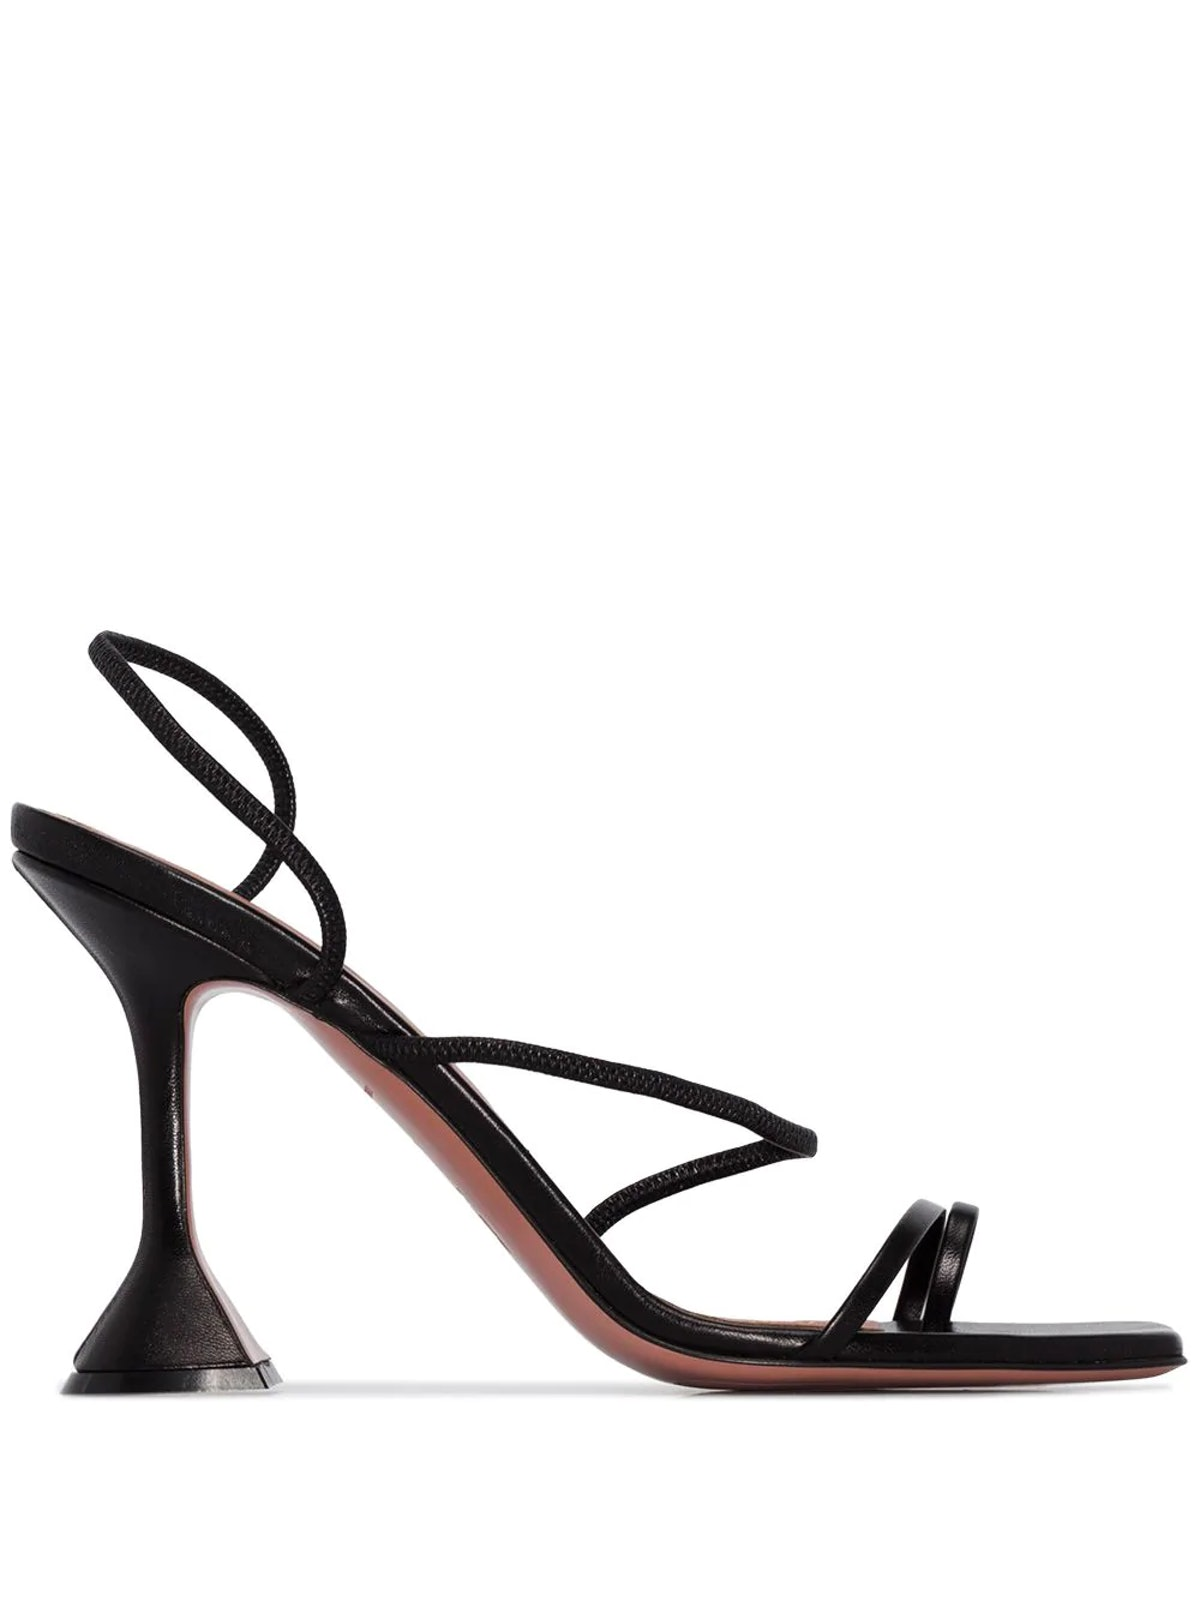 Naima 95mm Leather Sandals